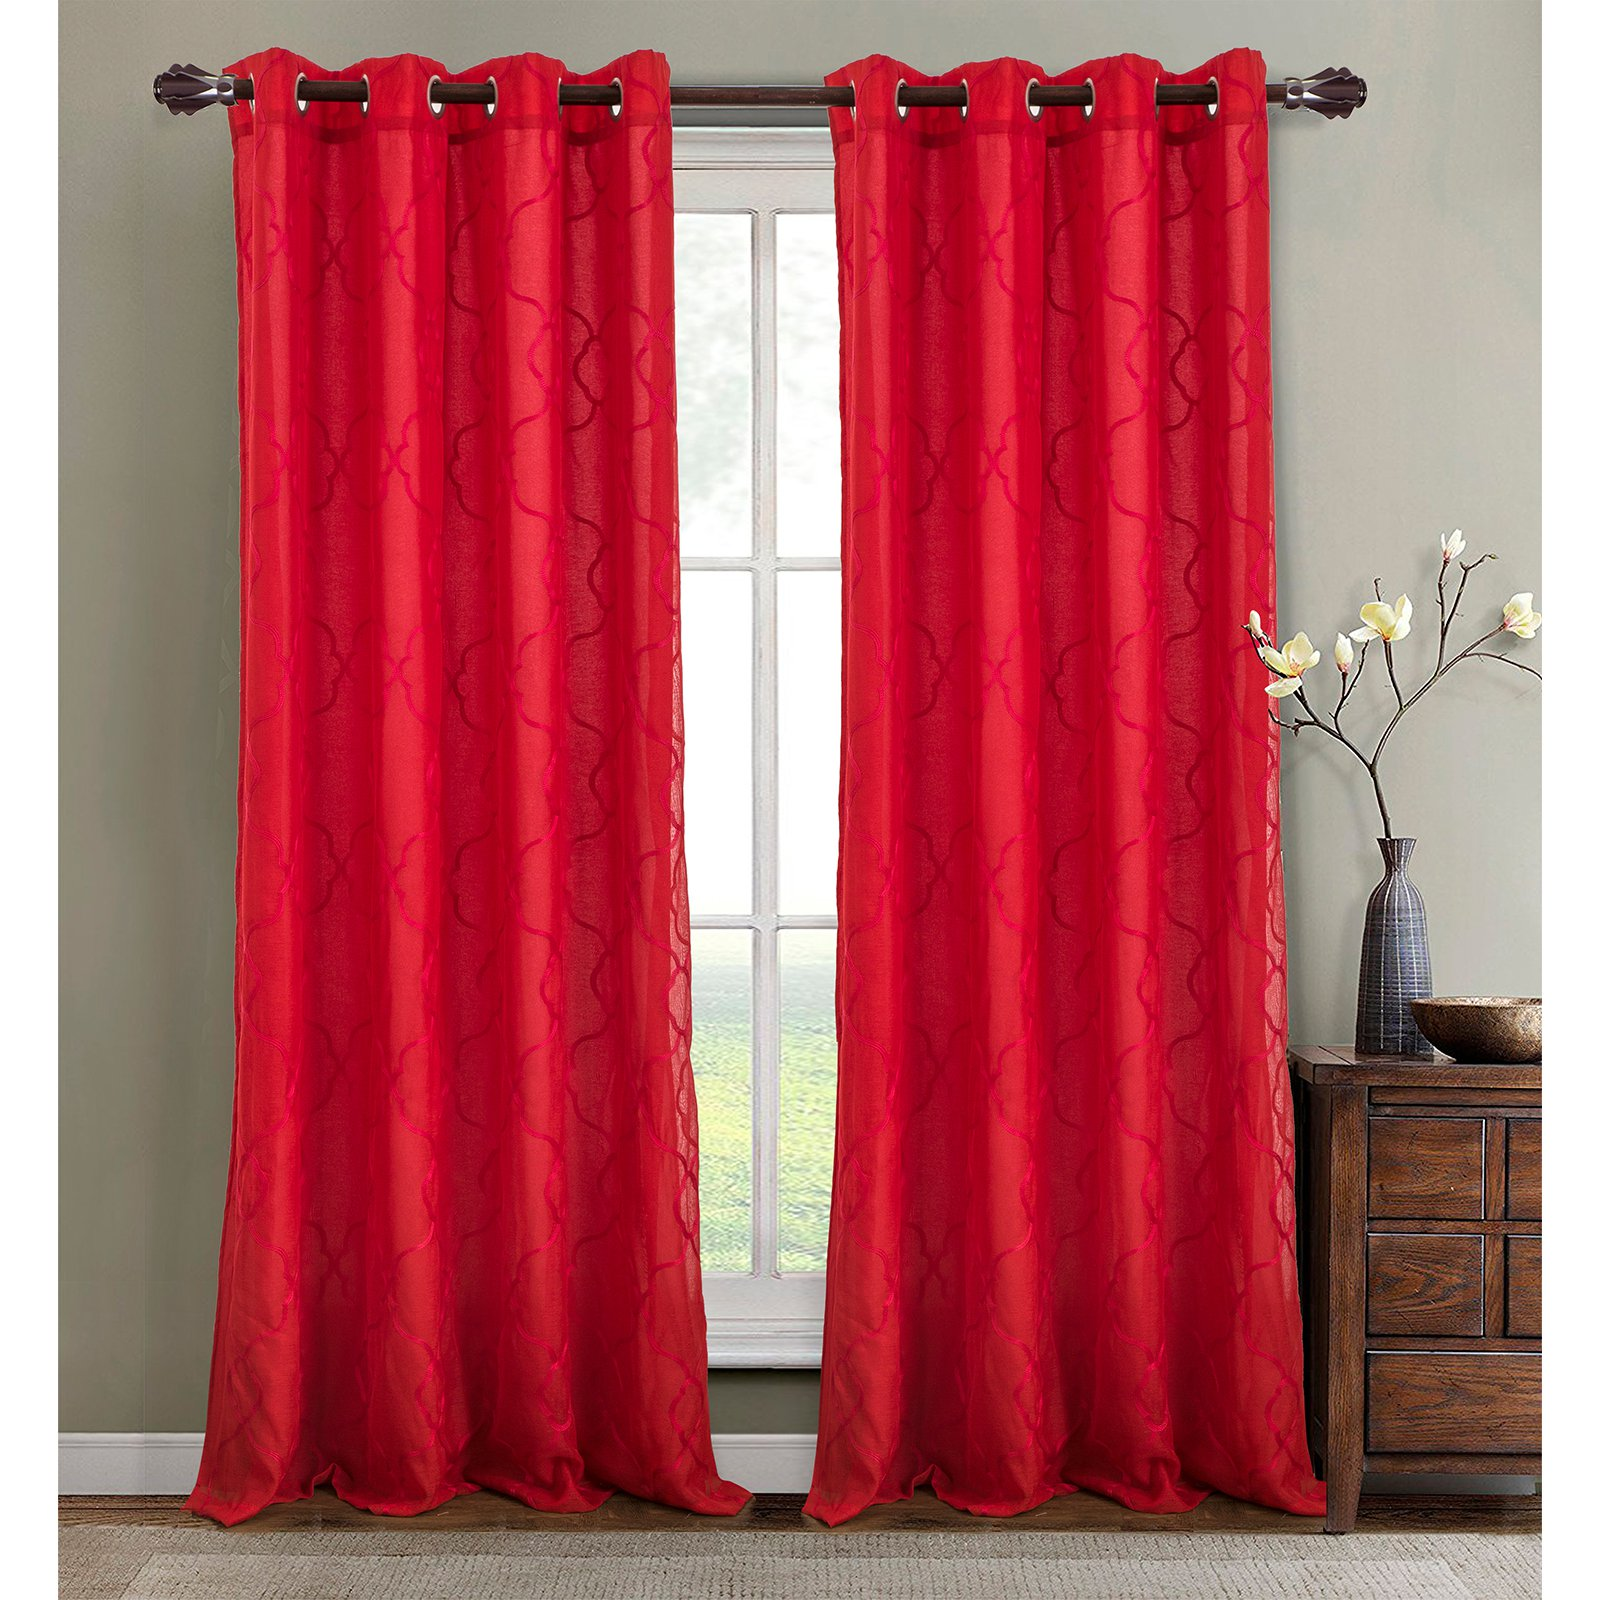 Rt Designers Collection Crescent Embroidered Lined Grommet Window